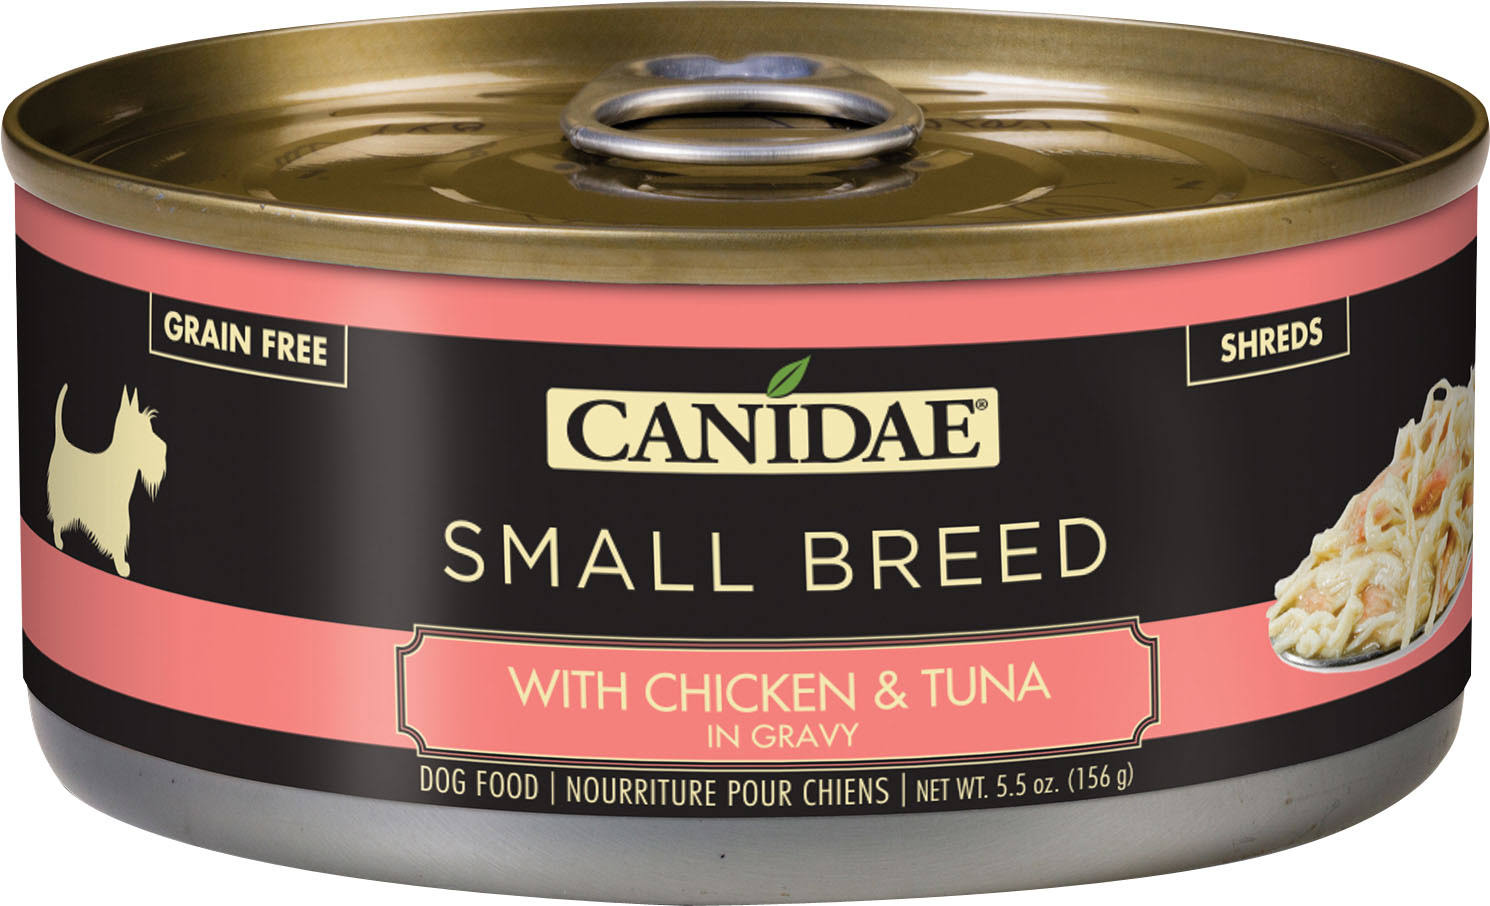 Canidae Pure Small Breed Stew Wet Dog Food - Natural, Grain Free Size: 5.5 oz, copper/gum/olive, Chicken & Tuna, Adult